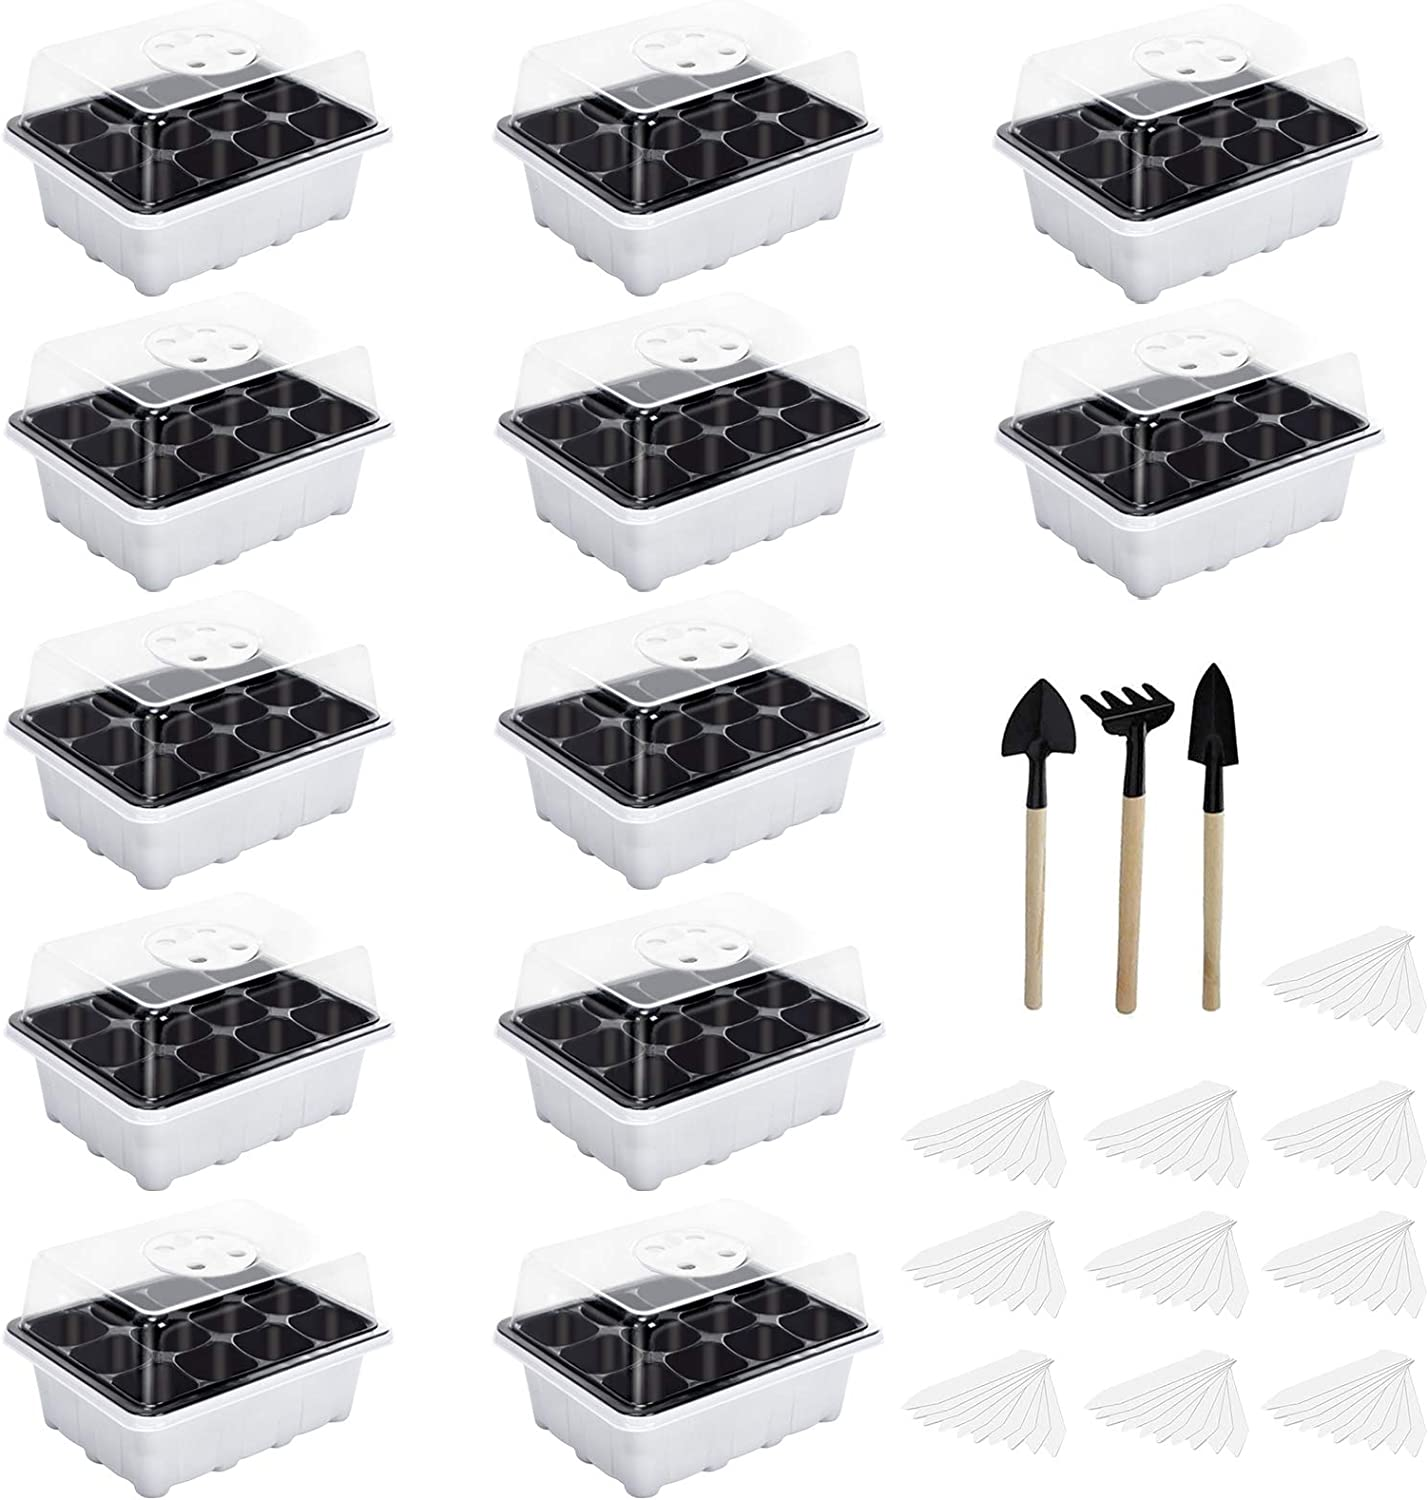 ZeeDix 12 Set Seedling Trays Seed Starter Kit- 144 Cells Plant Grow Kit, Garden Seed Propagator Premium Seedling Dome and Tray with 5 Inch Vented Humidity Dome(12 Cells Per Tray)